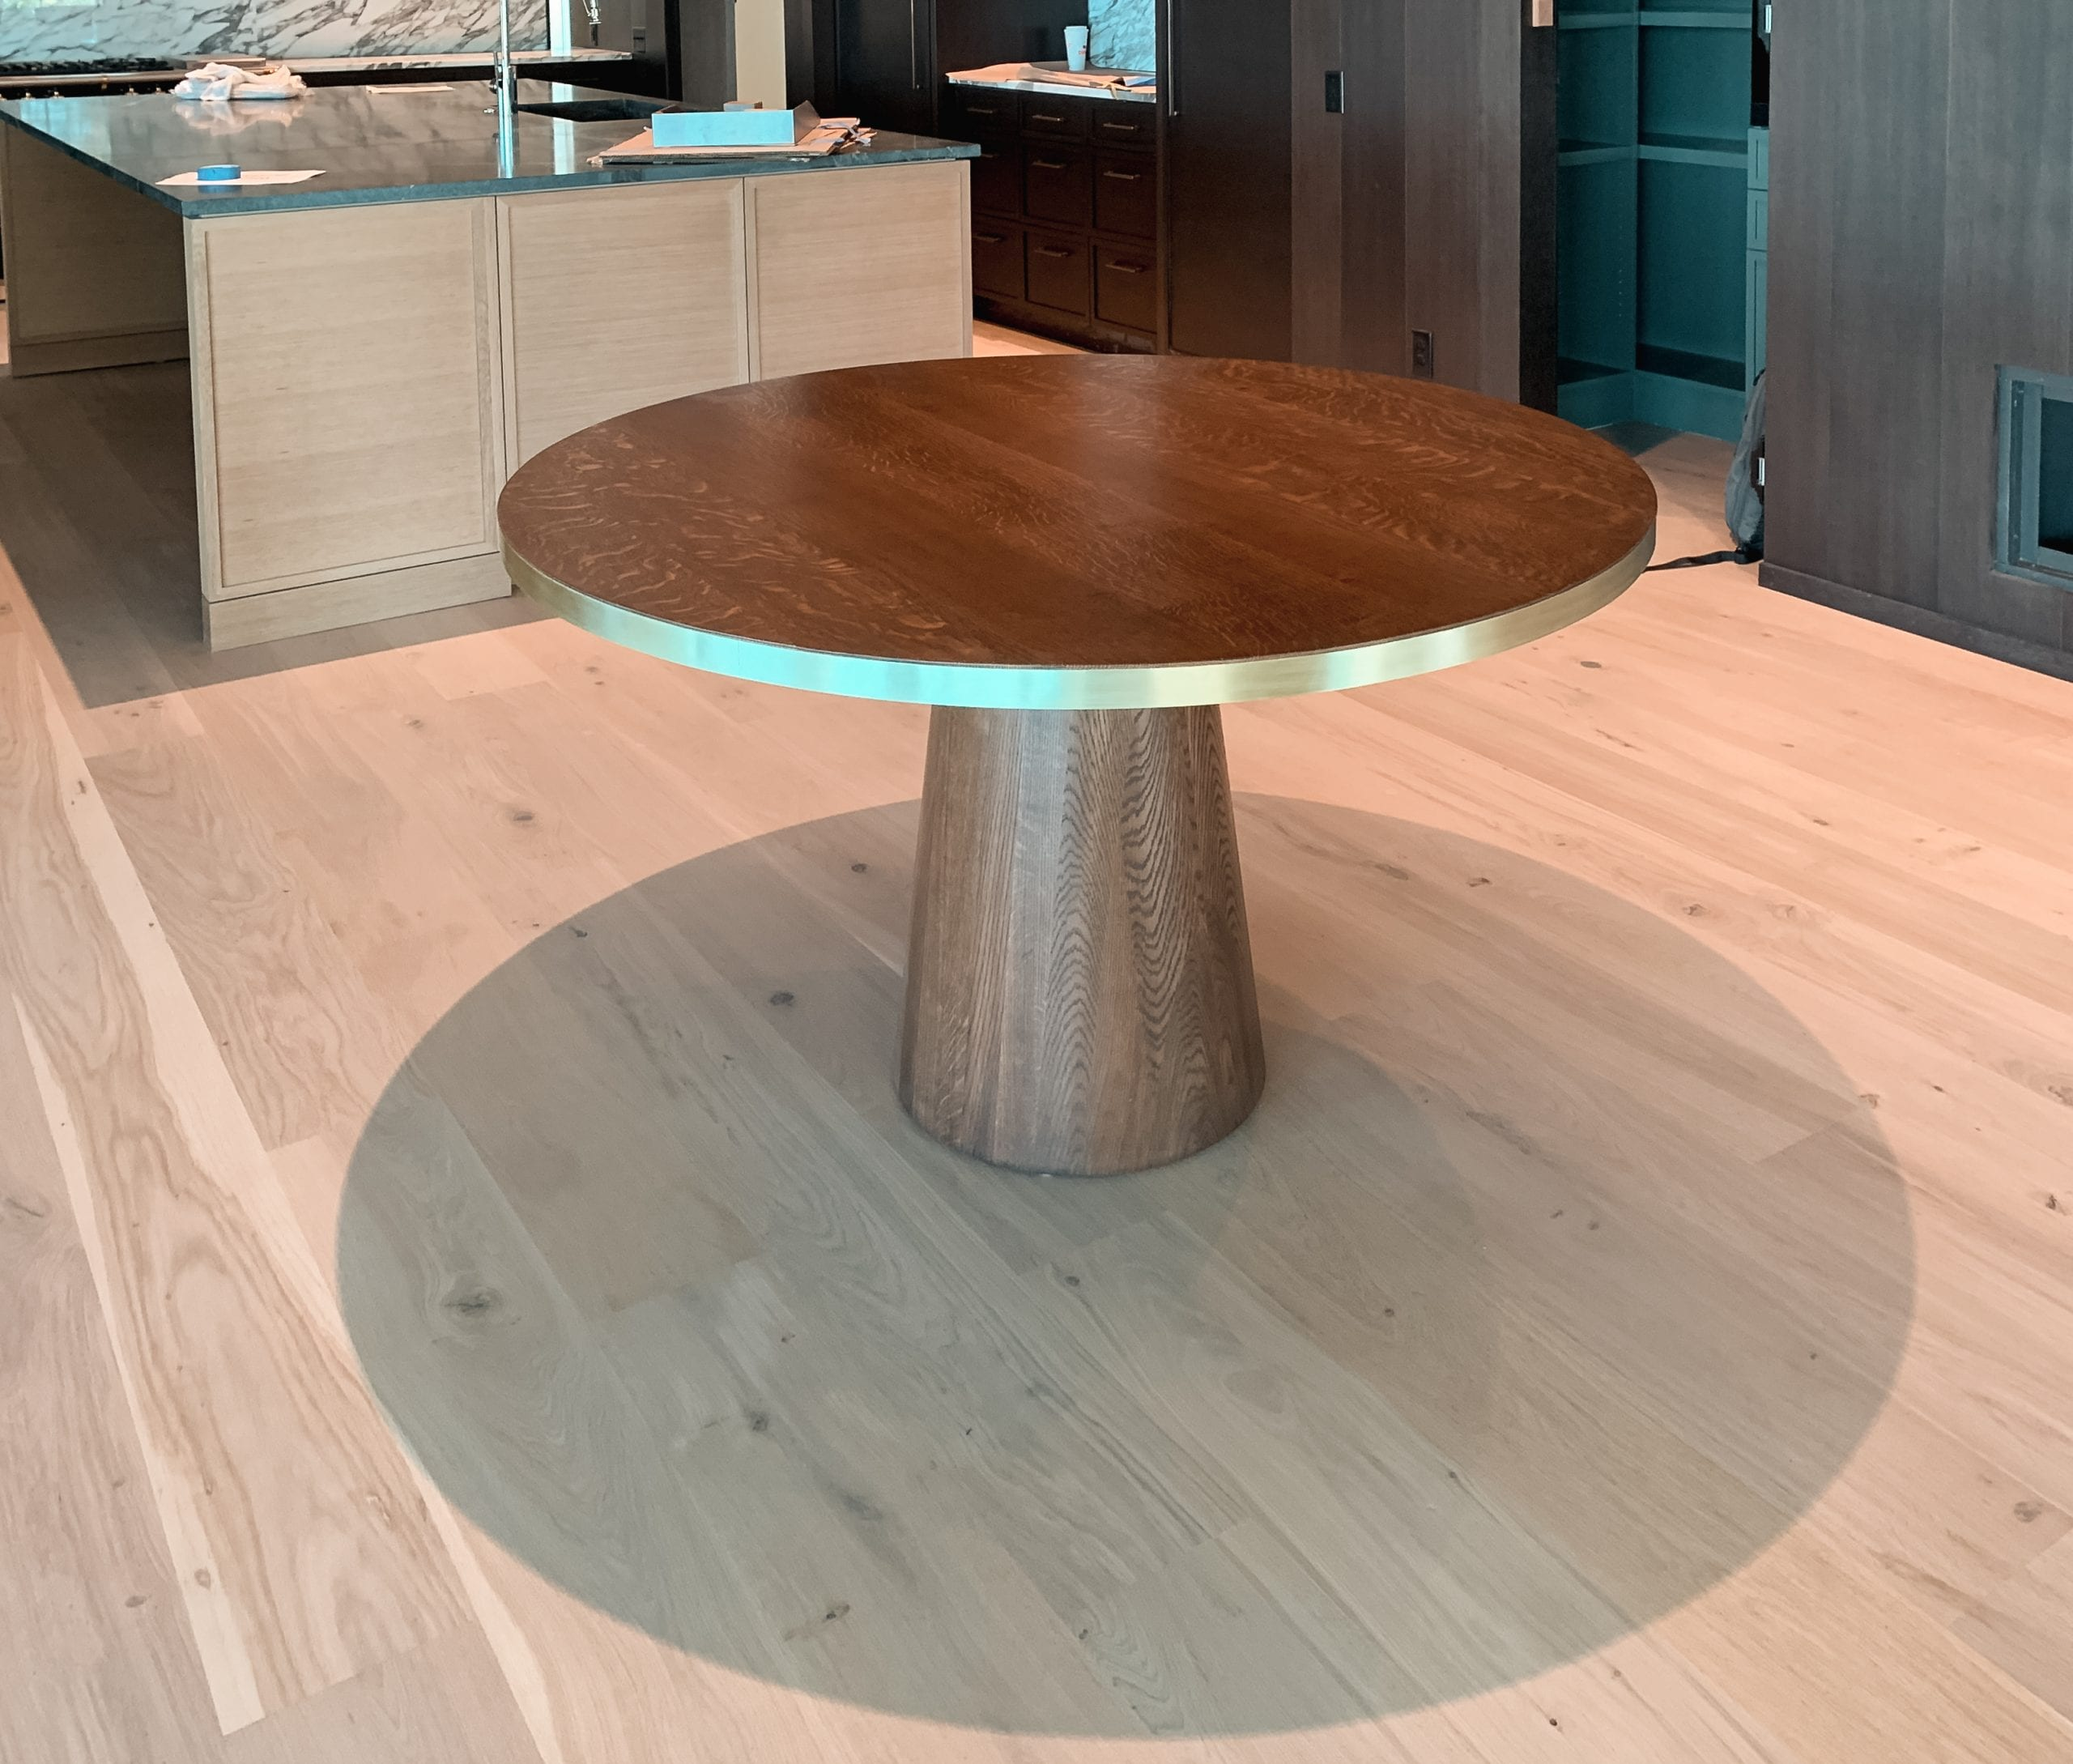 Oak and Brass Circular Dining Table in Walnut